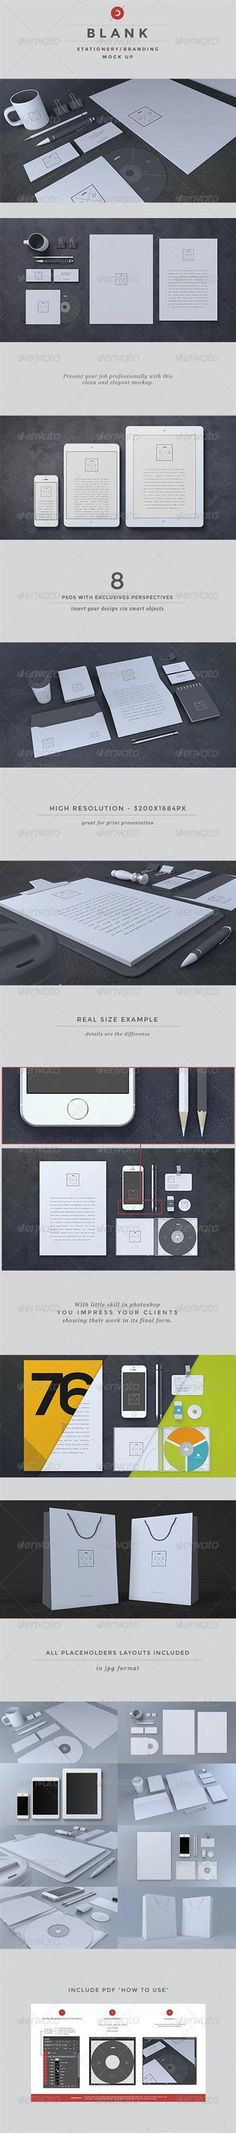 Blank Stationery Branding Mock-Up – GraphicRiver » Free Hero Graphic Design: Special GFX Posts Vectors AEP Projects PSD Sources Web Templates 3D Stock Images   HeroGFX.com